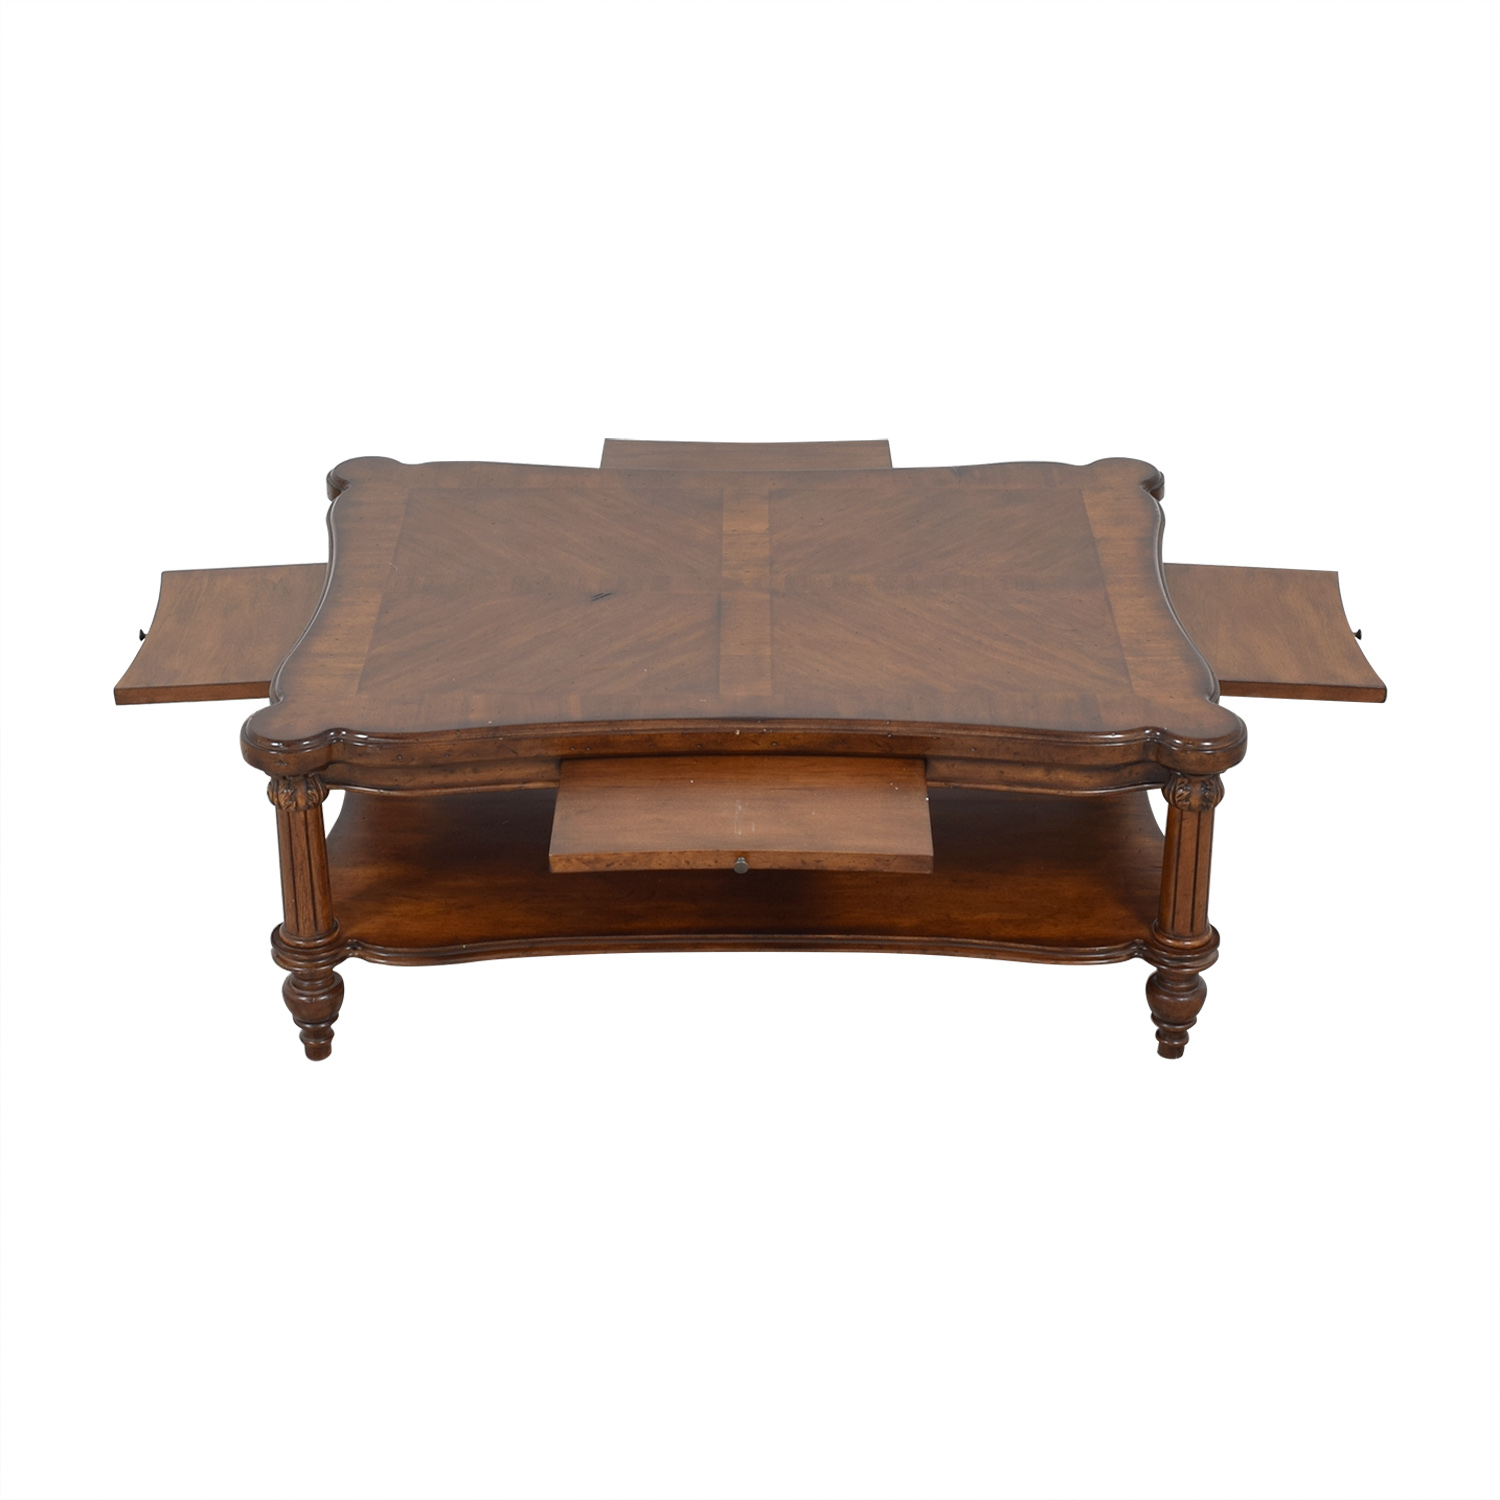 Ethan Allen Ethan Allen Coffee Table with Trays dimensions